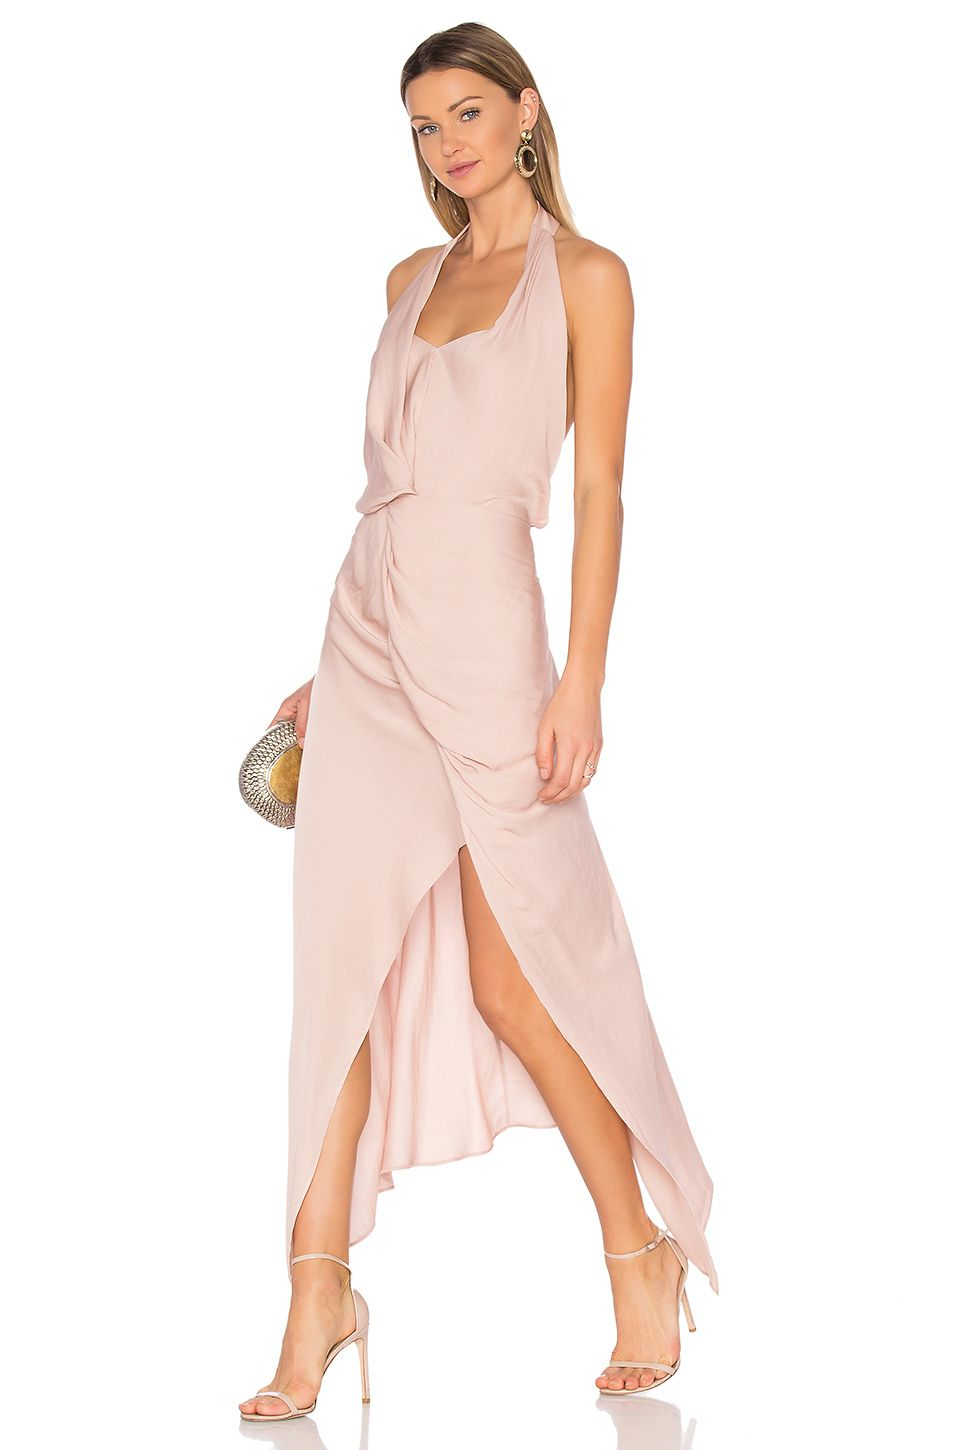 Pale pink dress for wedding guest  Jules Dress Pink  Wedding guest dresses Dress ideas and Fashion